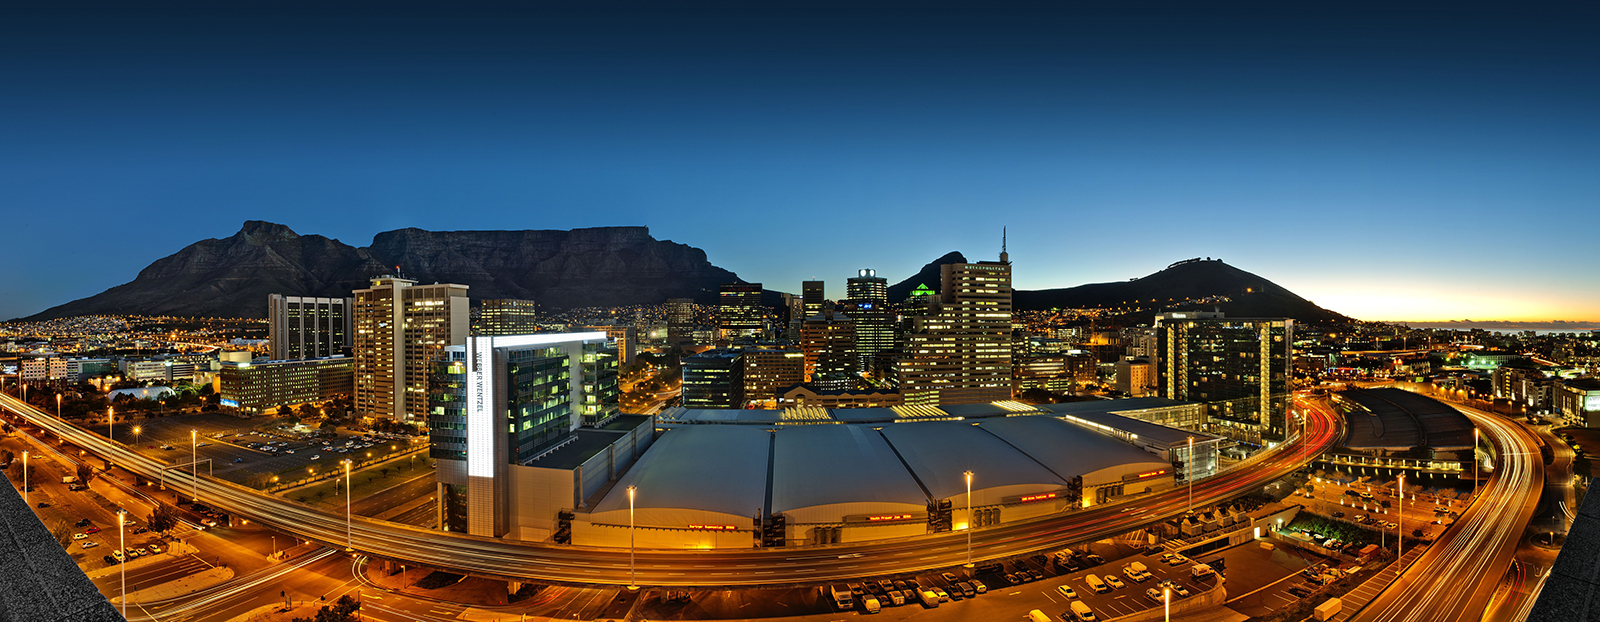 ICHRM 2016 : 18th International Conference on Economics and Human Resource Management Cape Town, South Africa November 3 - 4, 2016